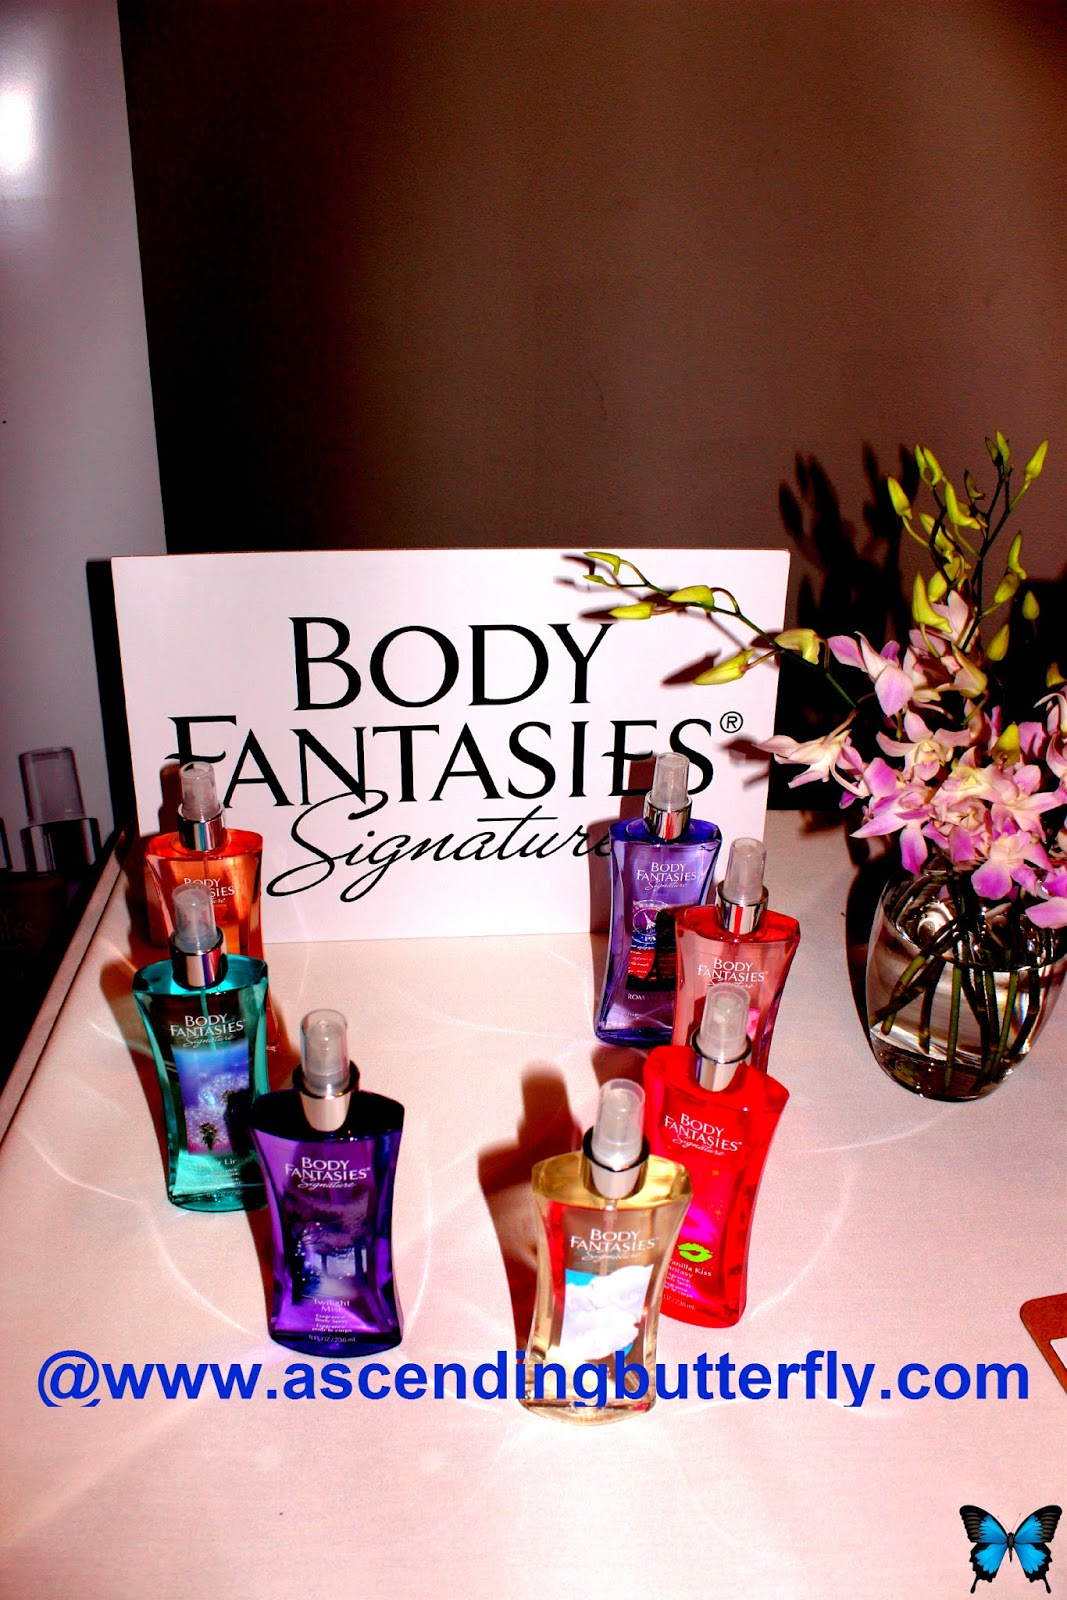 Body Fantasies Signature at Getting Gorgeous 2014, Fragrance Rebel, parfums de coeur